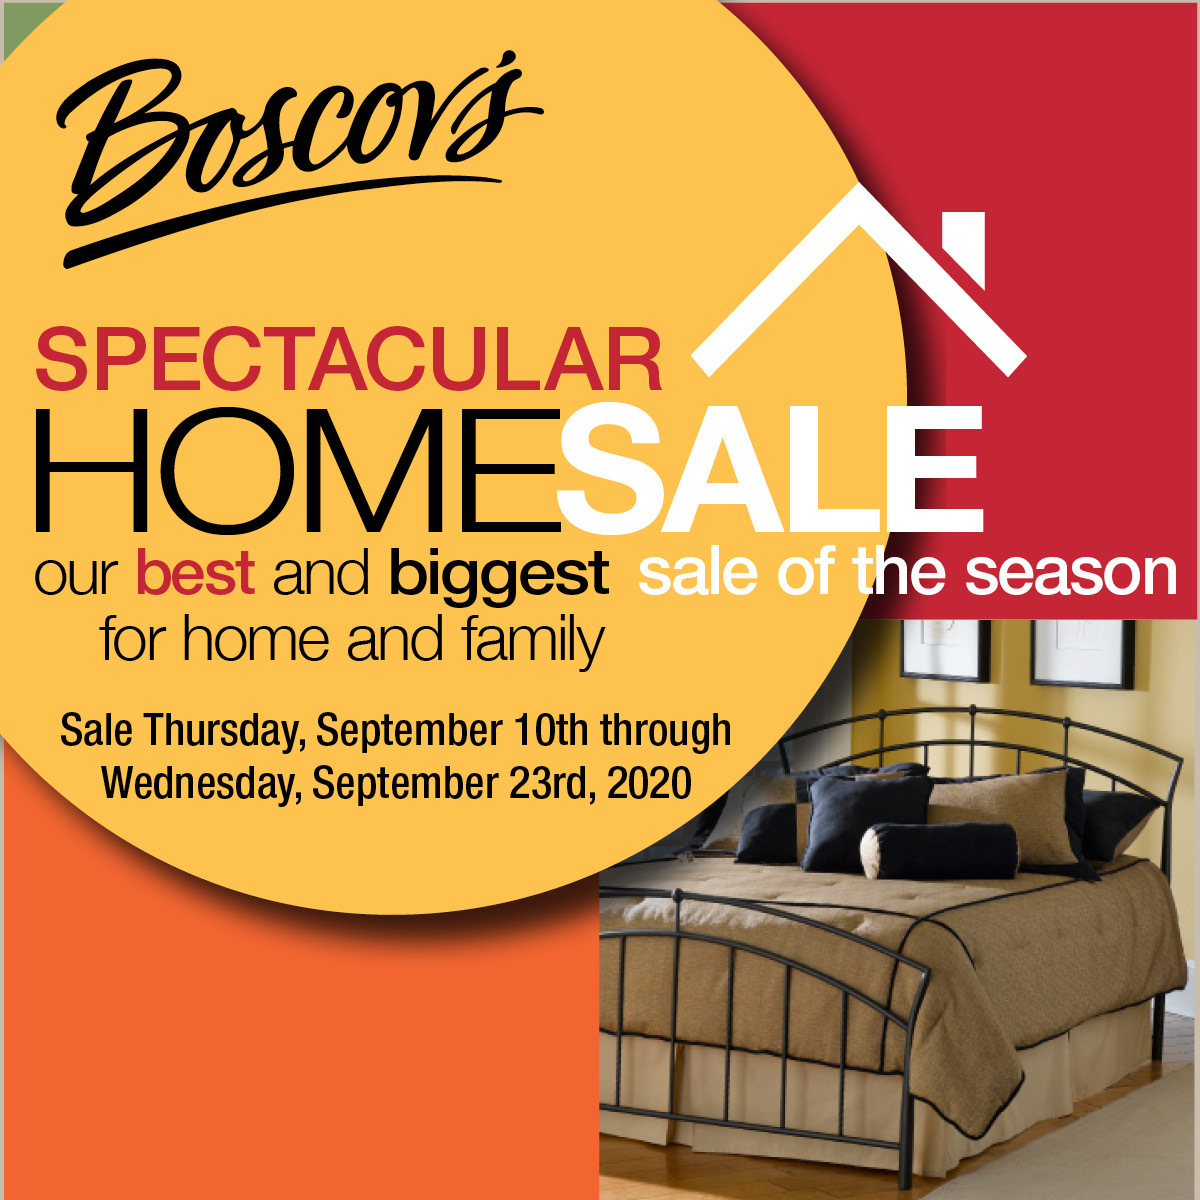 Boscov's Spectacular Home Sale from Boscov's